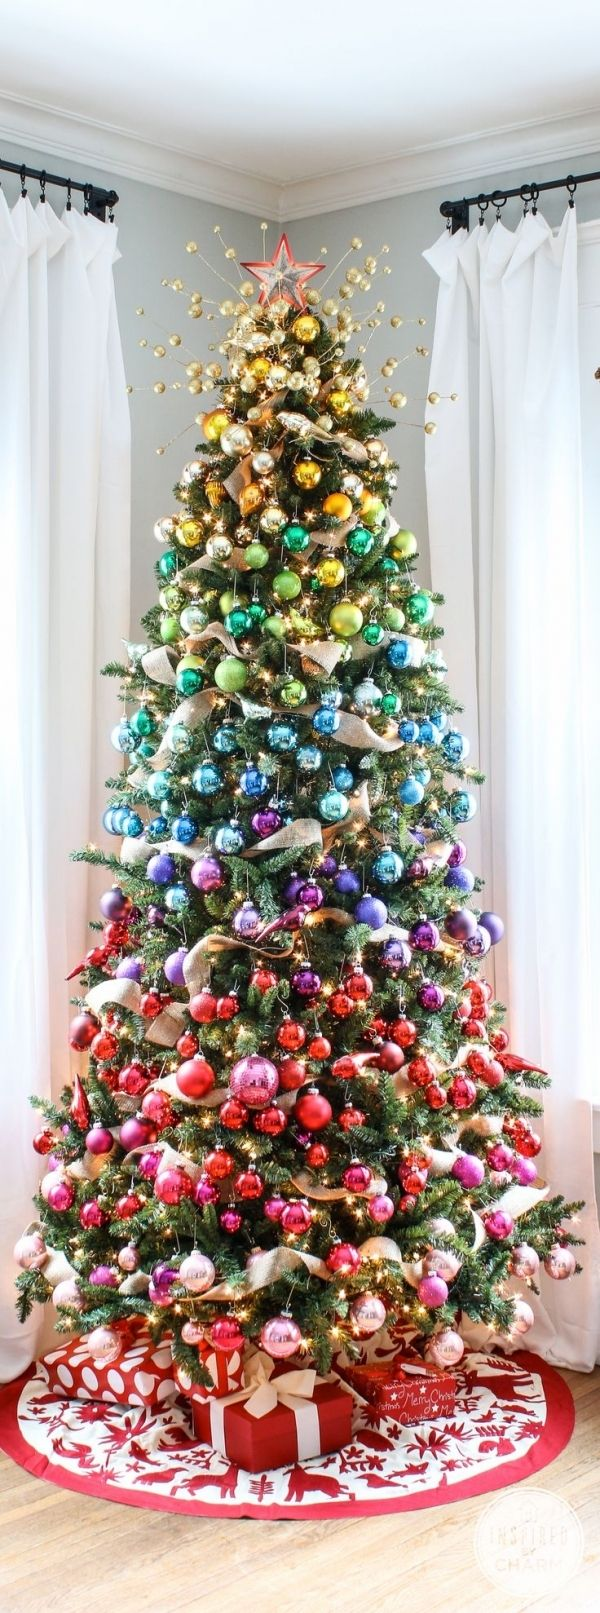 27 Stunning Christmas Trees You Can Create at Home ...